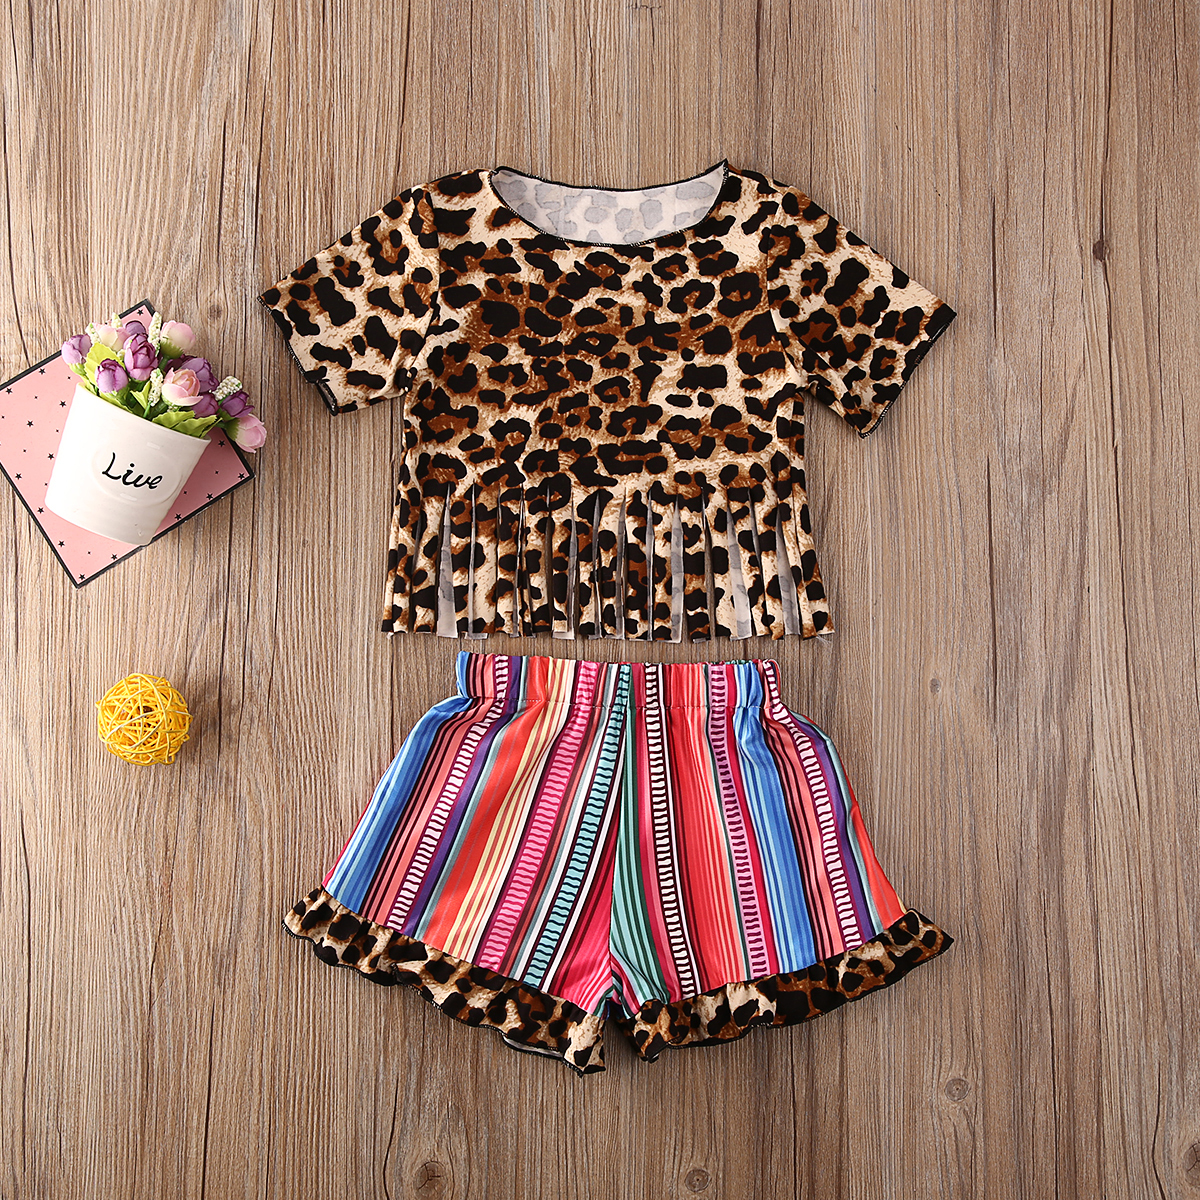 Pudcoco Toddler Baby Girl Clothes Leopard Print Tassle T-Shirt Tops Striped Shorts Pants 2Pcs Outfits Cotton Clothes Summer Set